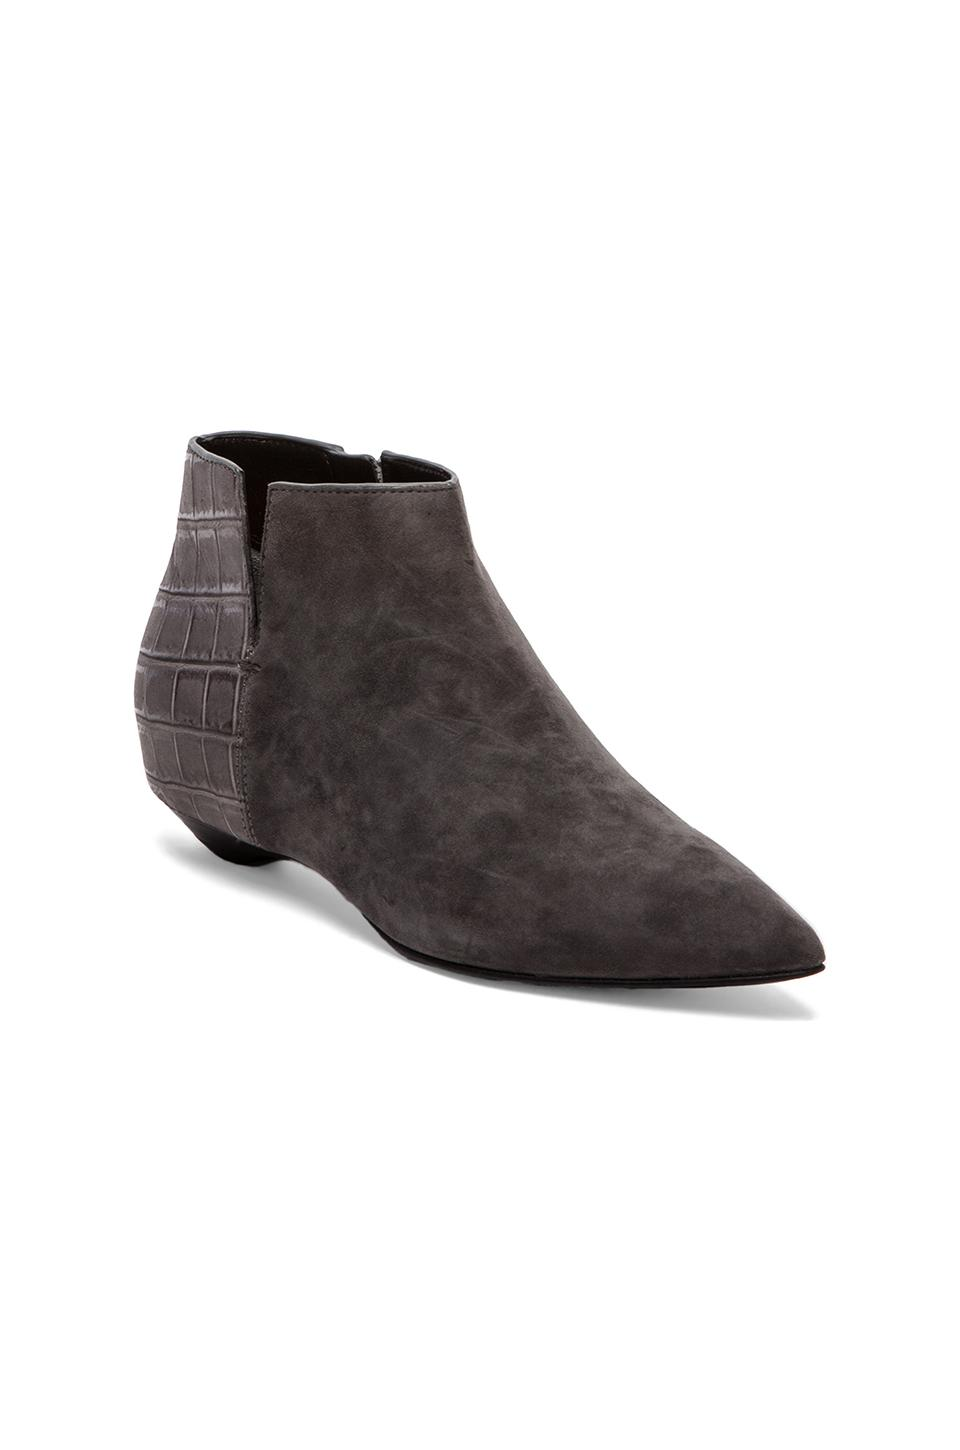 Sigerson Morrison Gabrielle Bootie in Deep Grey & Steel Grey from REVOLVEclothing.com